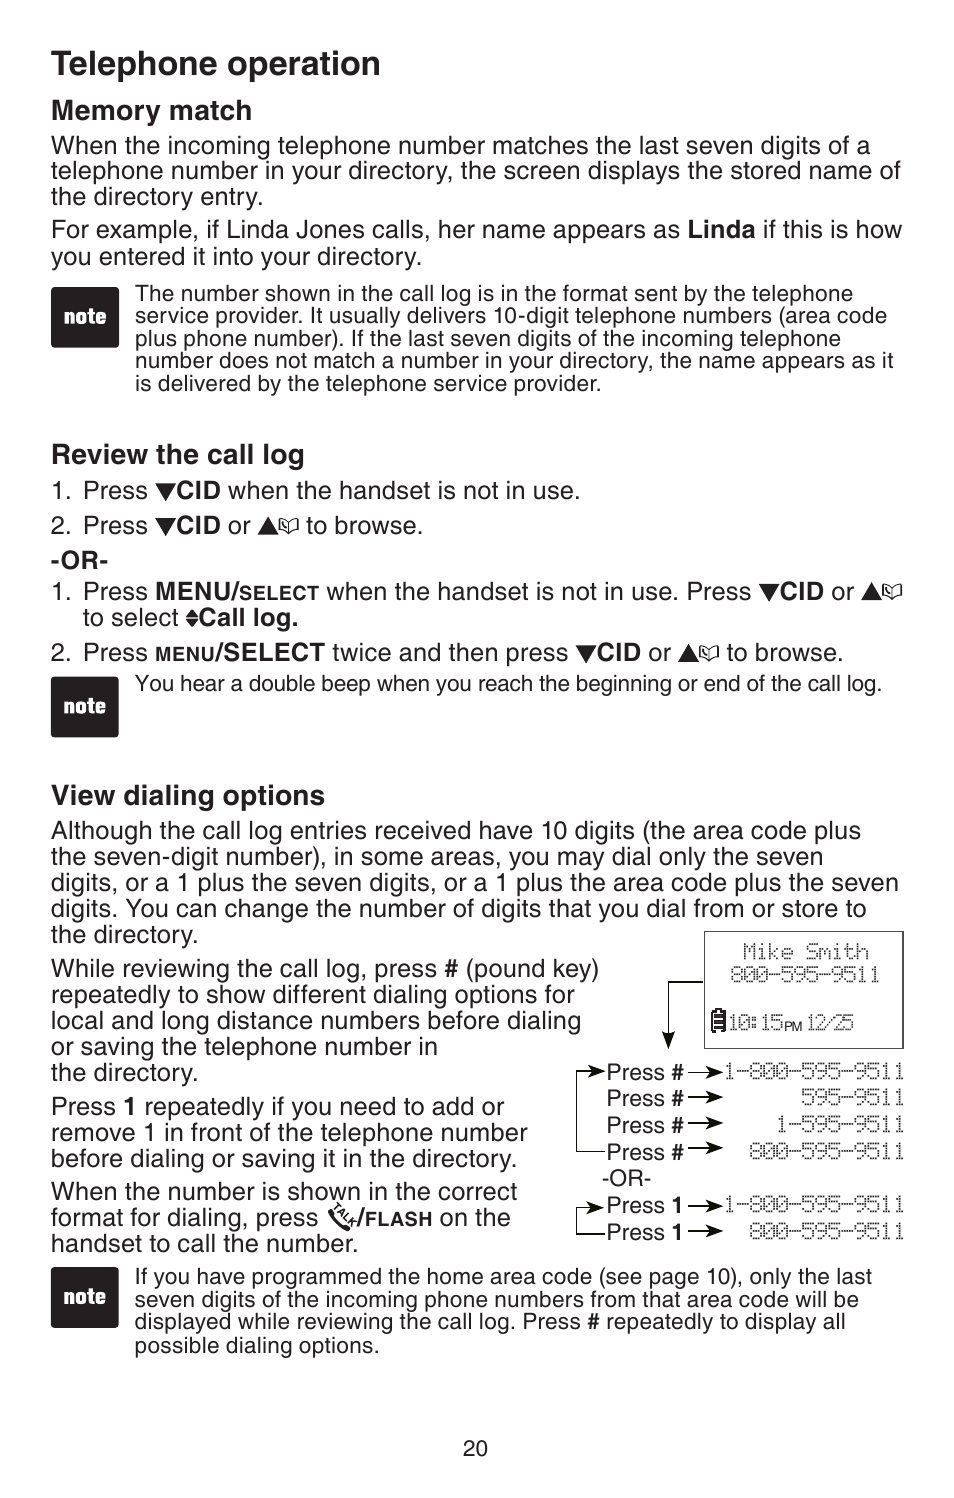 Memory Match Review The Call Log View Dialing Options